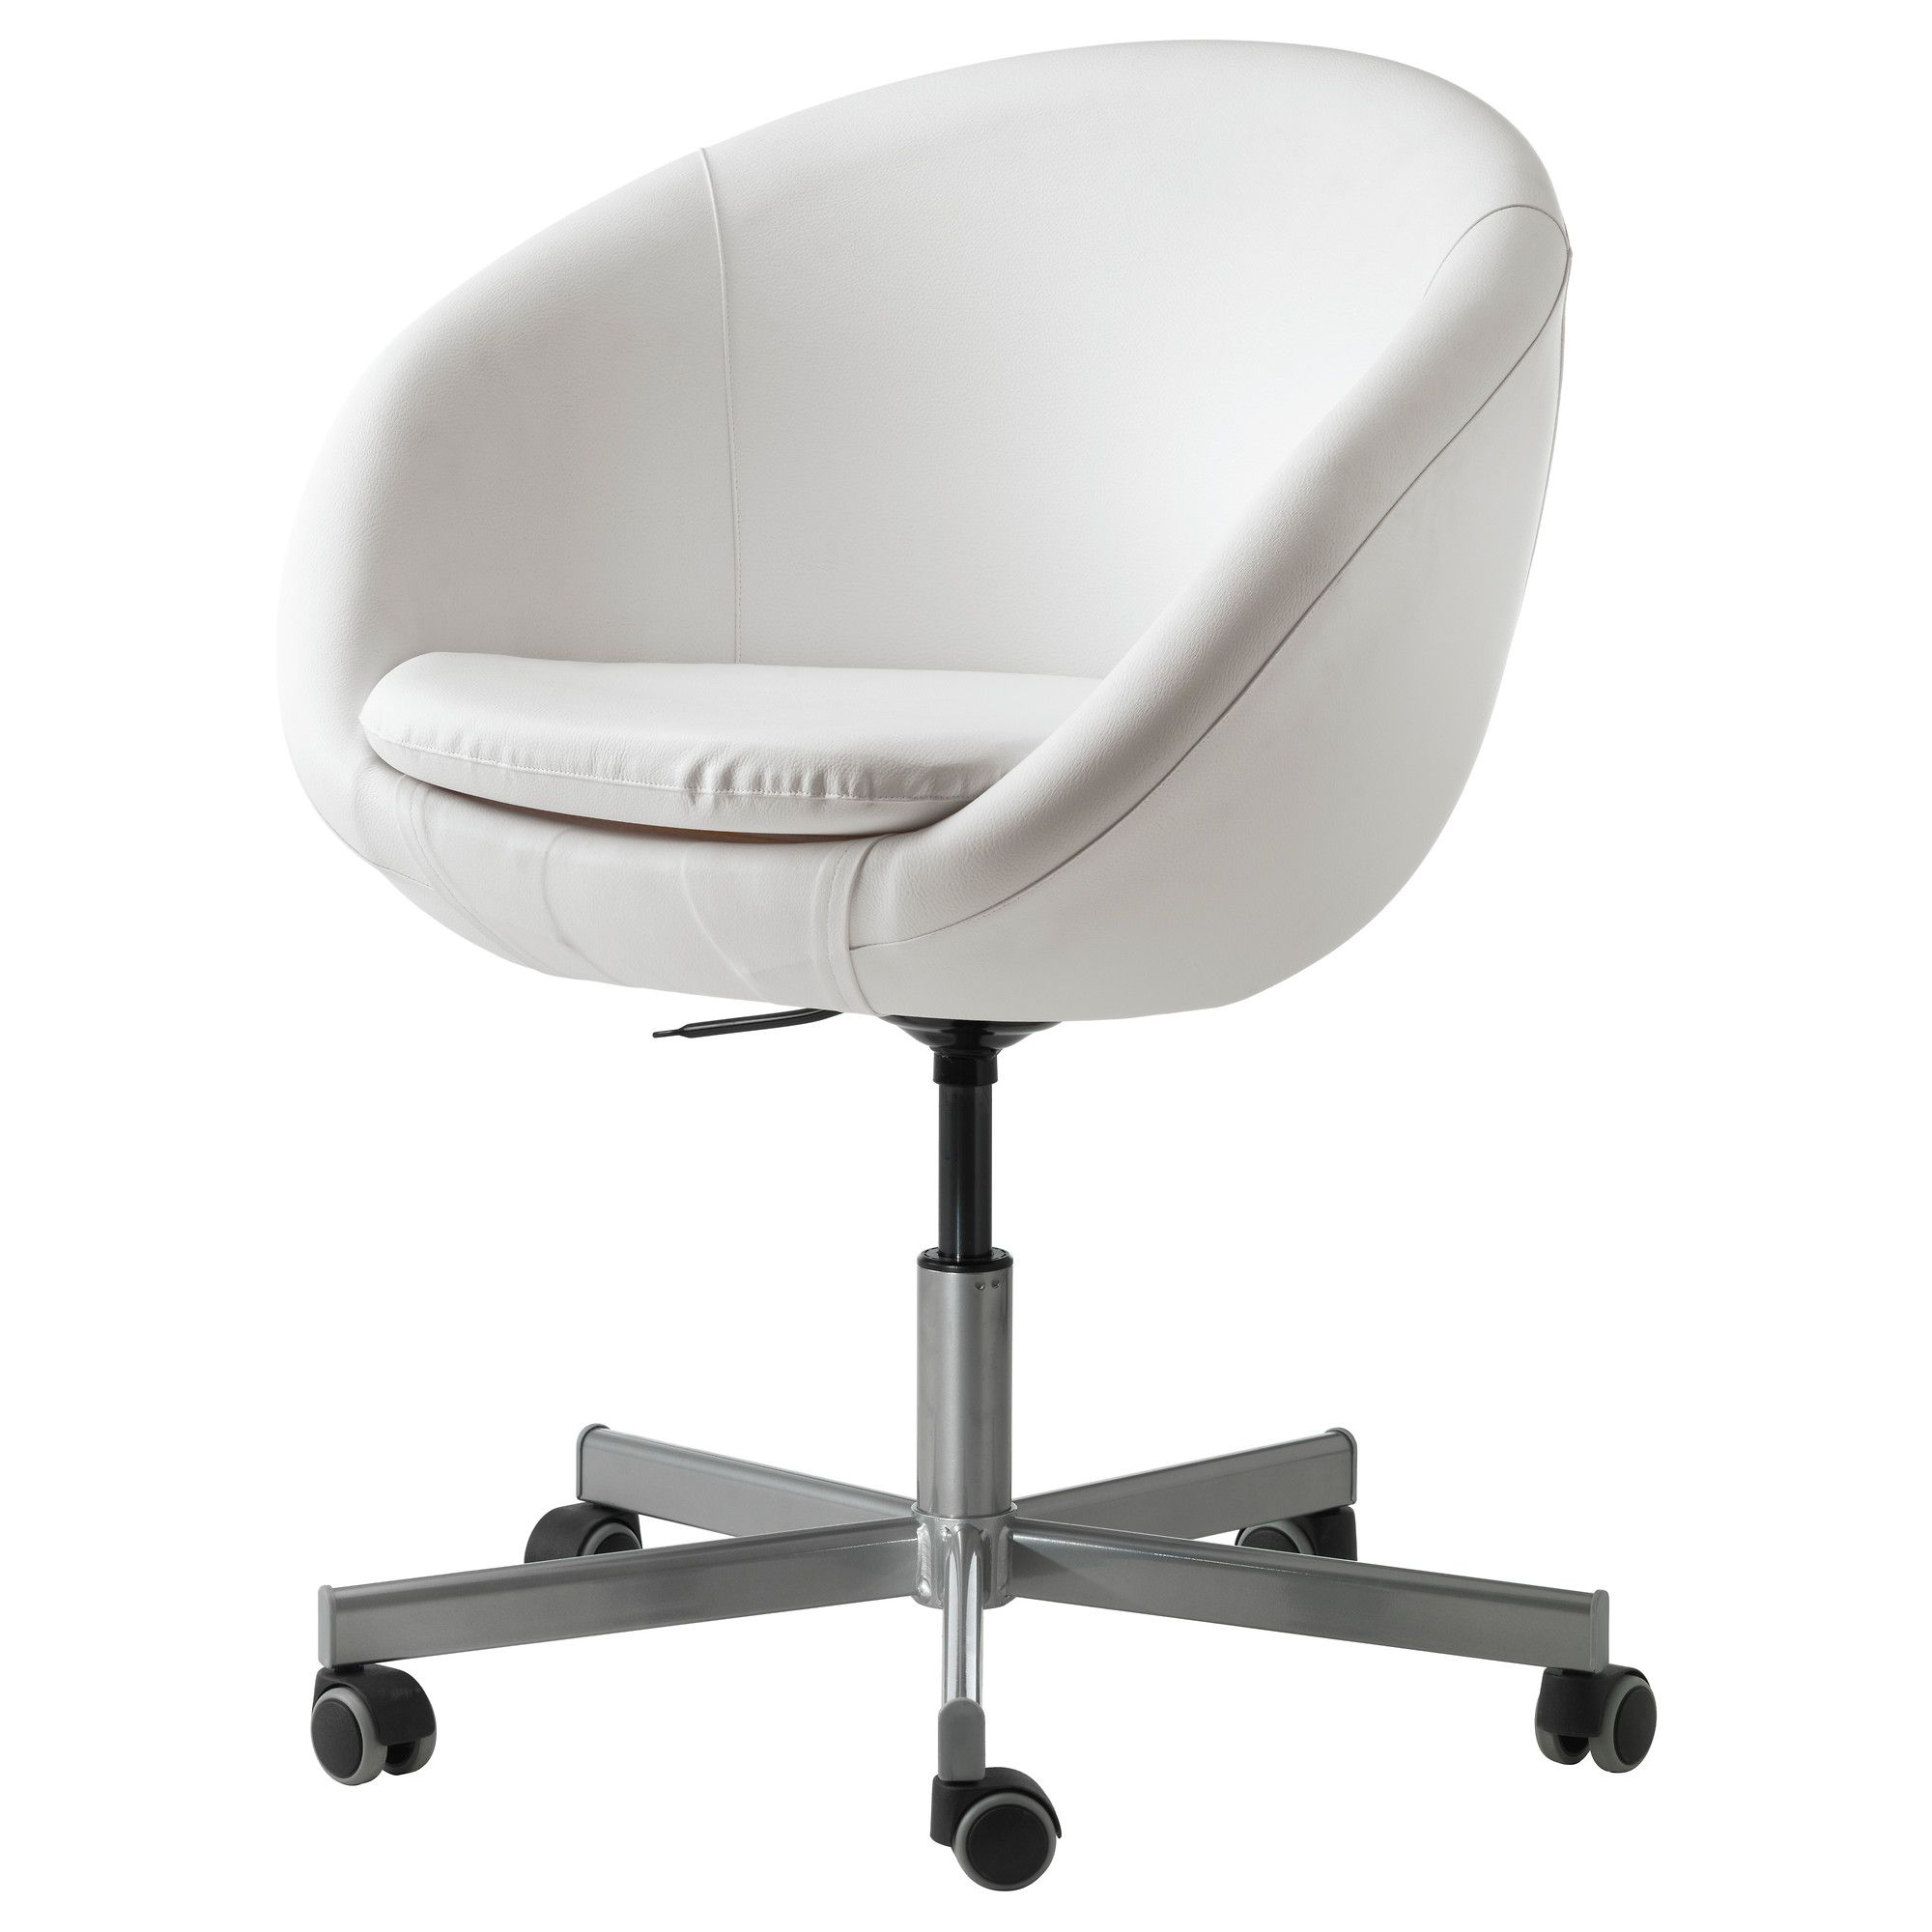 Skruvsta Swivel Chair Idhult White Ikea The Perfectly Cute And Functional Seat